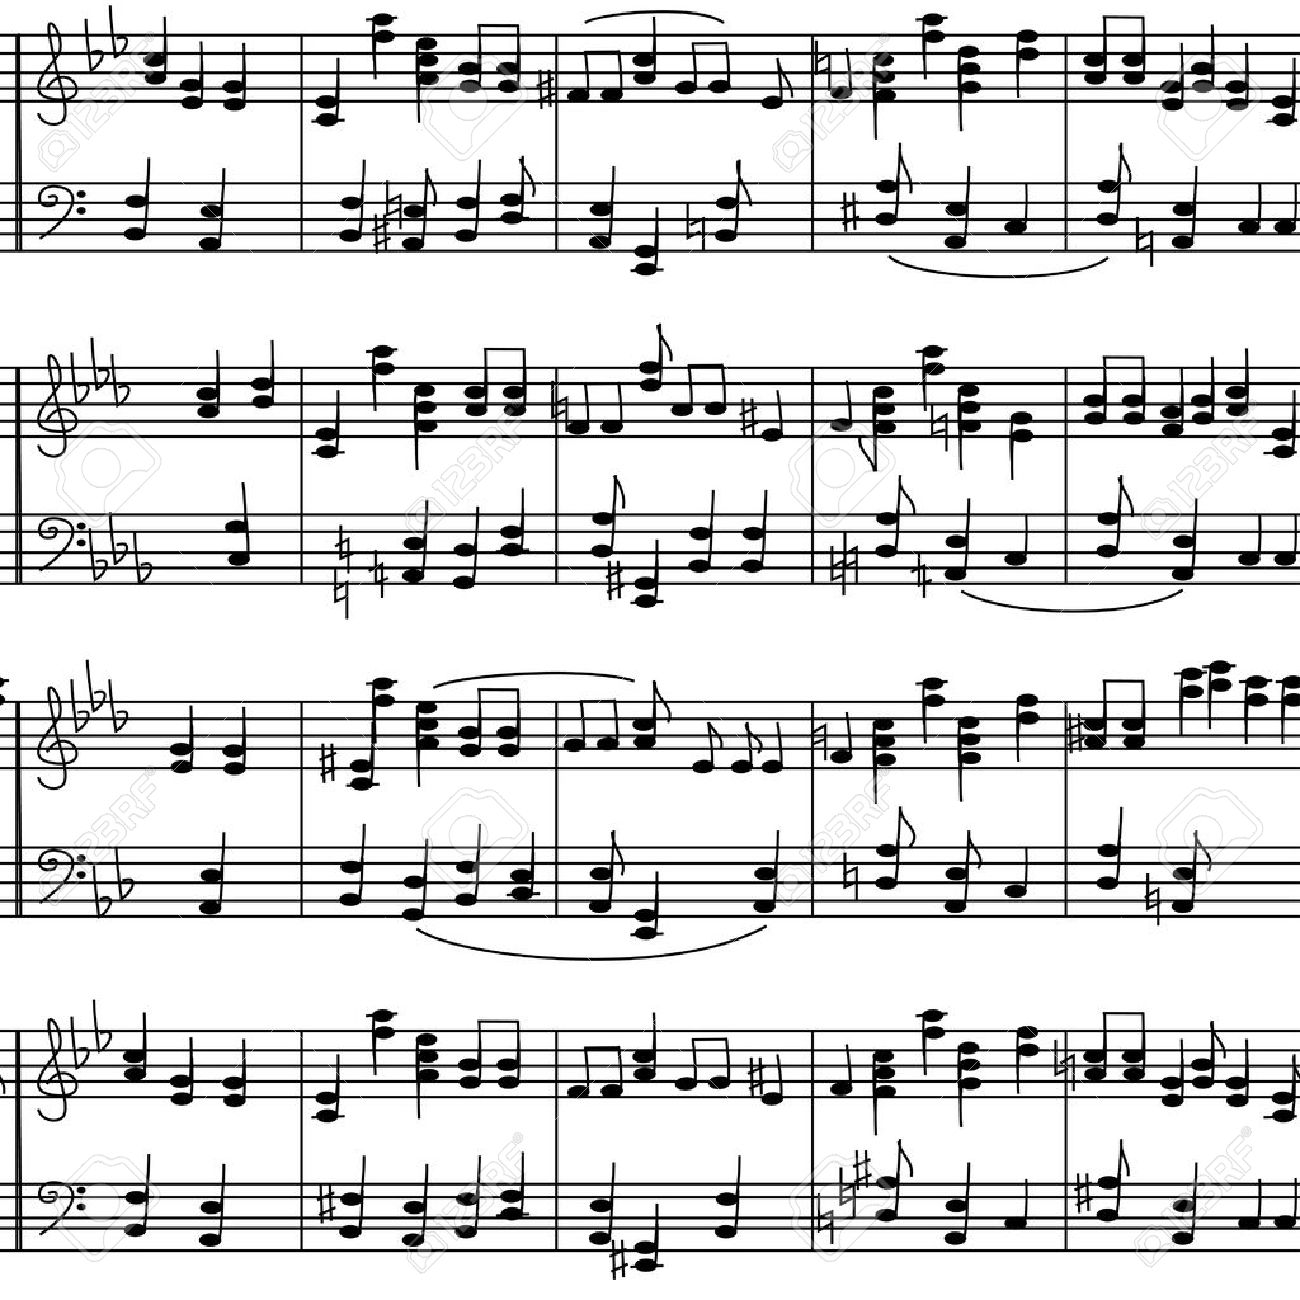 Sheet music clipart free png free library Sheet music clipart free - ClipartFest png free library